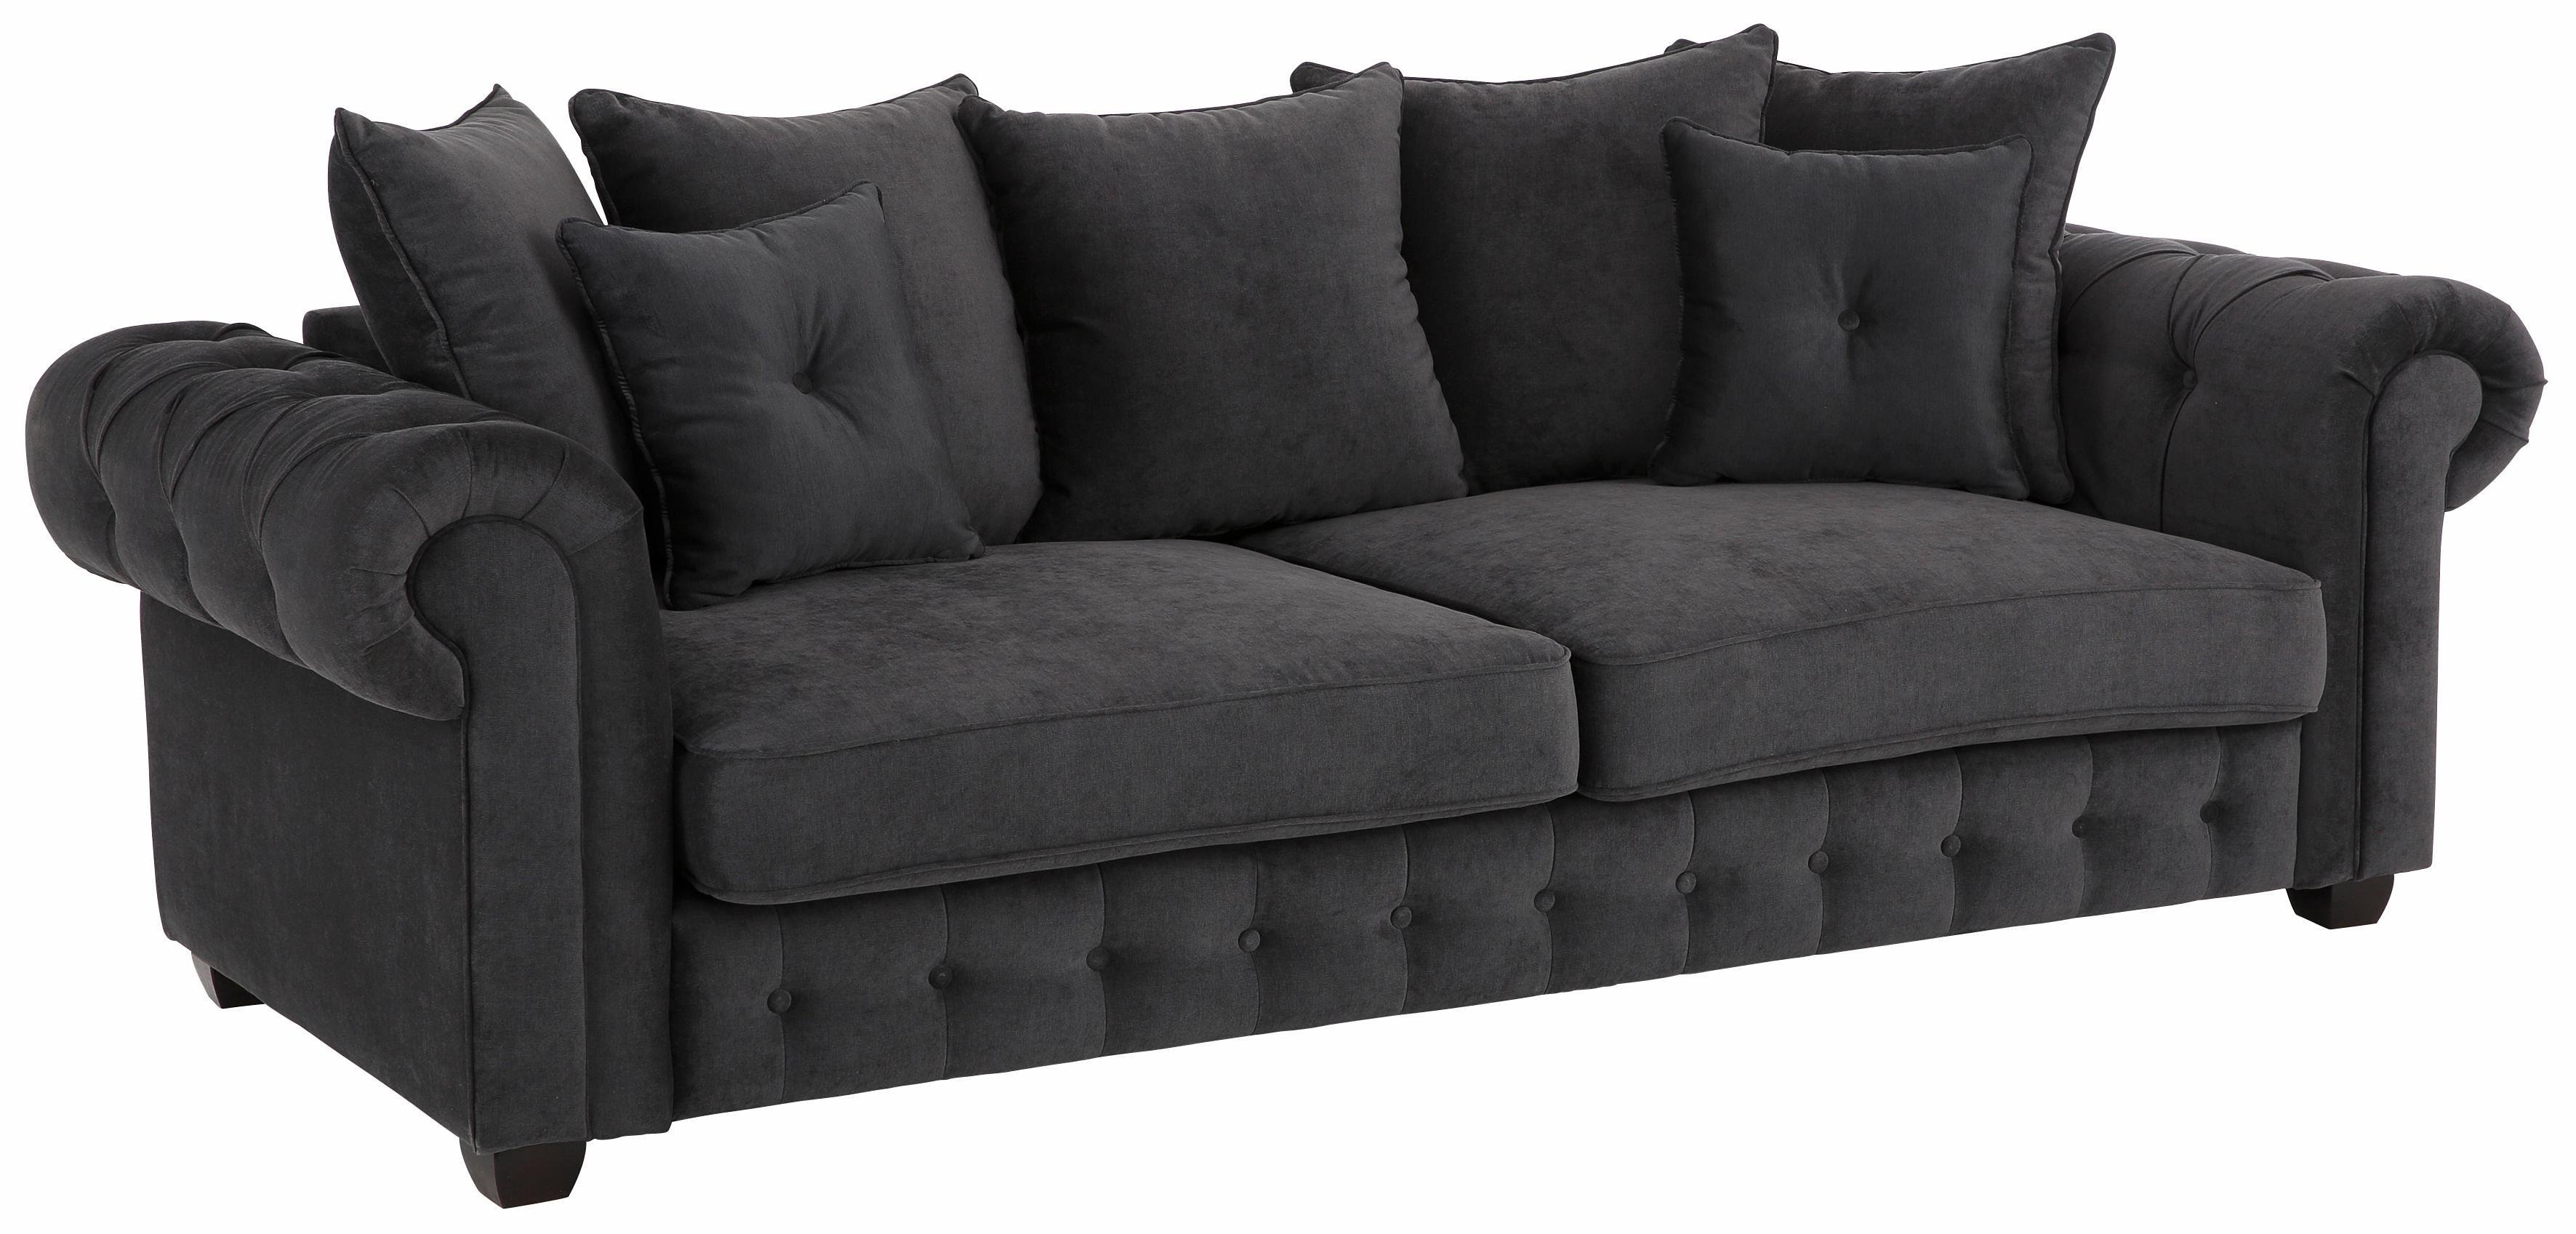 seats and sofas online bestellen sofa online bestellen amazing sitzersofa samt anna anthrazit. Black Bedroom Furniture Sets. Home Design Ideas